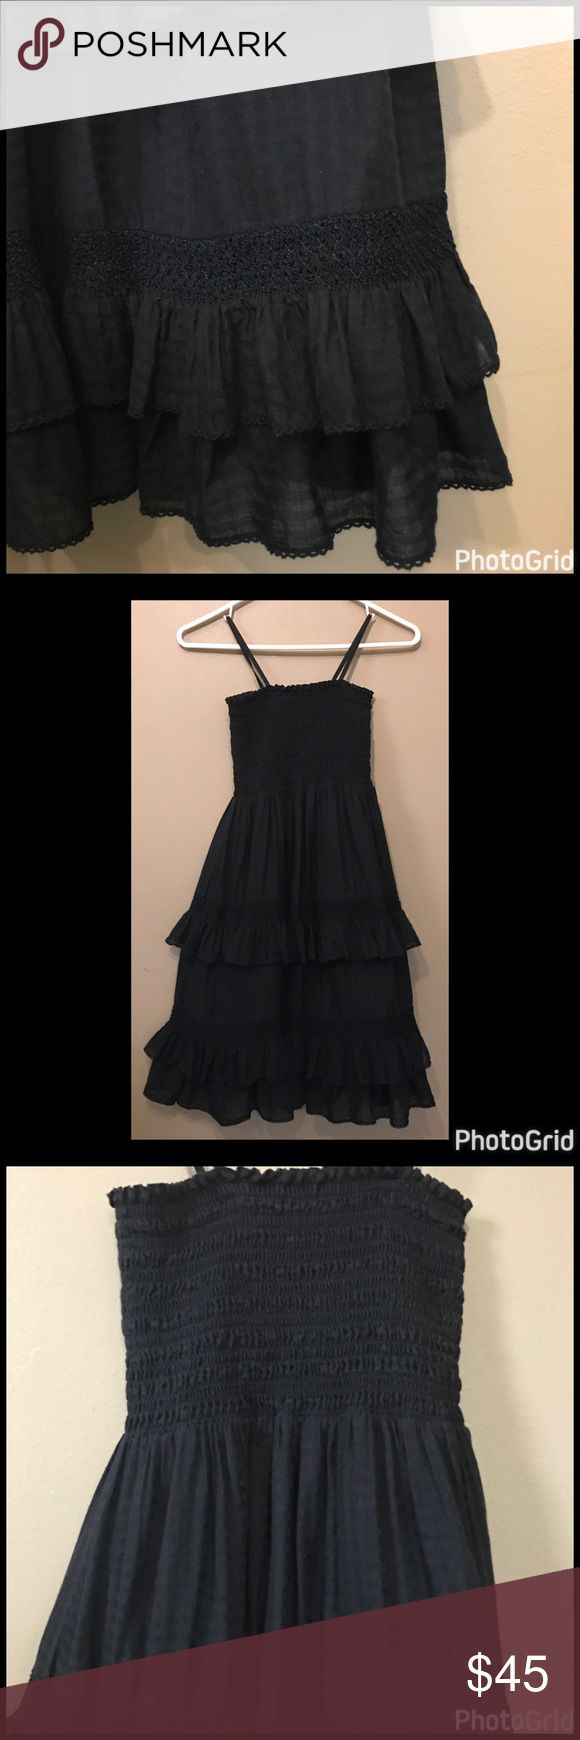 "Juicy Couture Ruffled Tube Dress Excellent used condition! Black ruffled dress with stretch tube top style top with straps. Lined with ruffled bottom. Approximately 34"" from top of shoulder. 100% gauze like cotton. Slightly striped. Juicy Couture Dresses Midi"